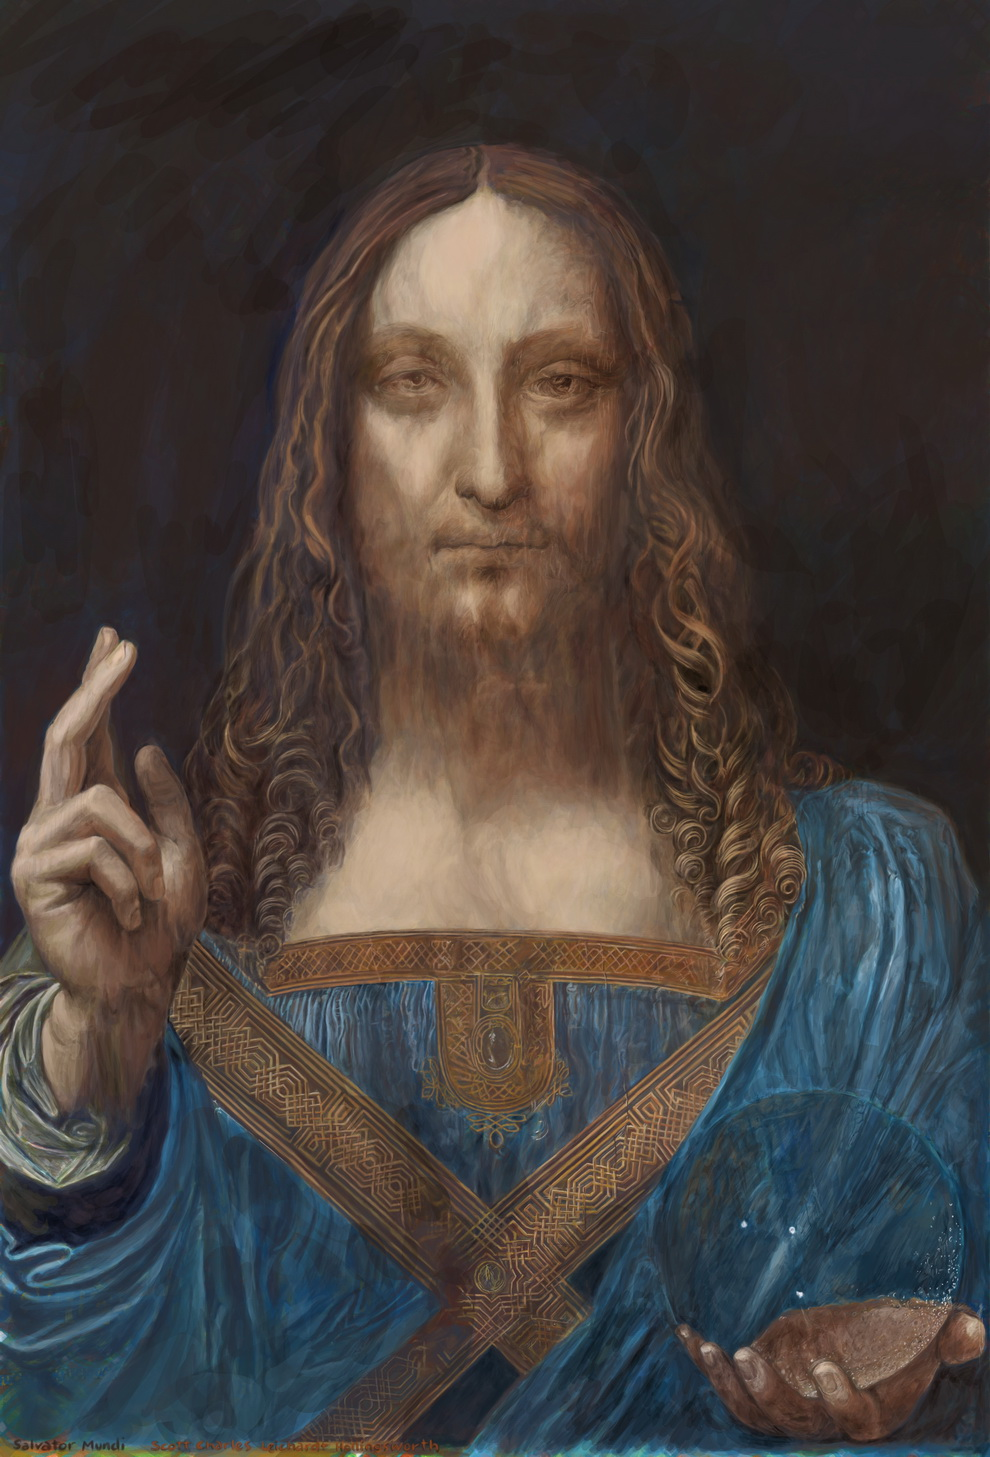 smaller image of the work, Salvator Mundi